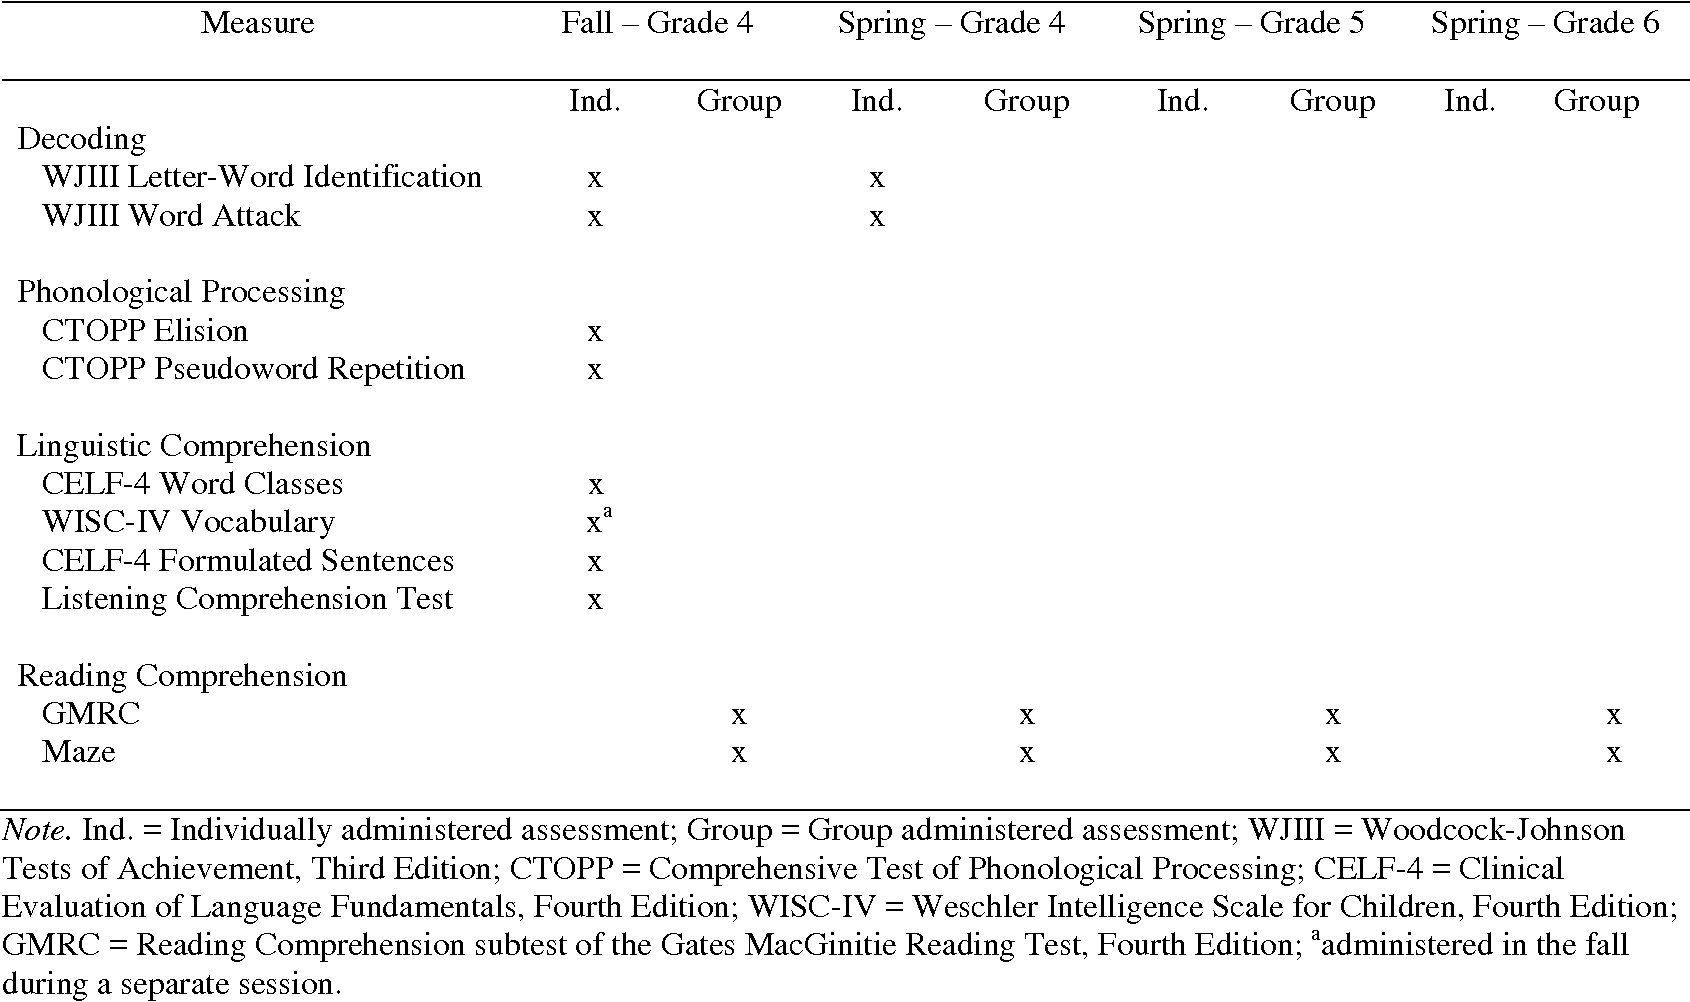 Table 5 from Clarifying Linguistic Comprehension in the Simple View